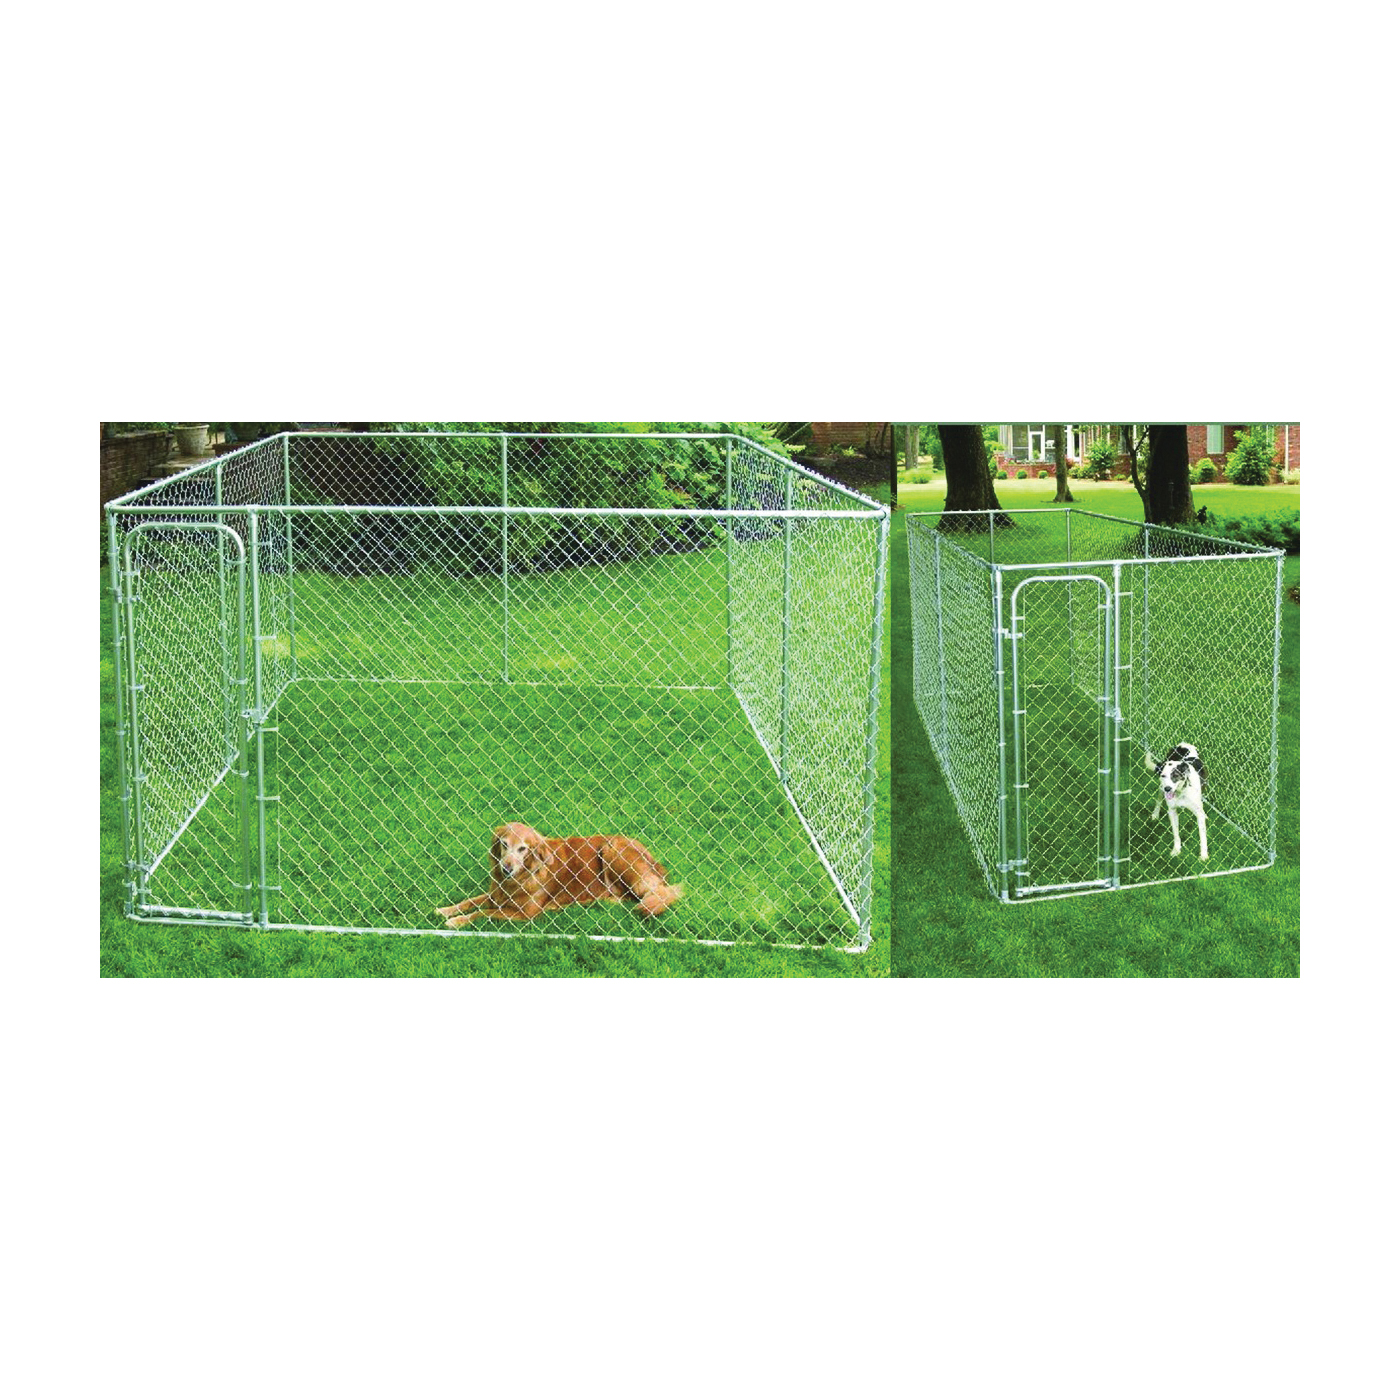 Picture of Stephens Pipe & Steel RSHBK11-10977 Dog Kennel Box, 10 ft OAL, 15 ft OAW, 6 ft OAH, Steel, Galvanized